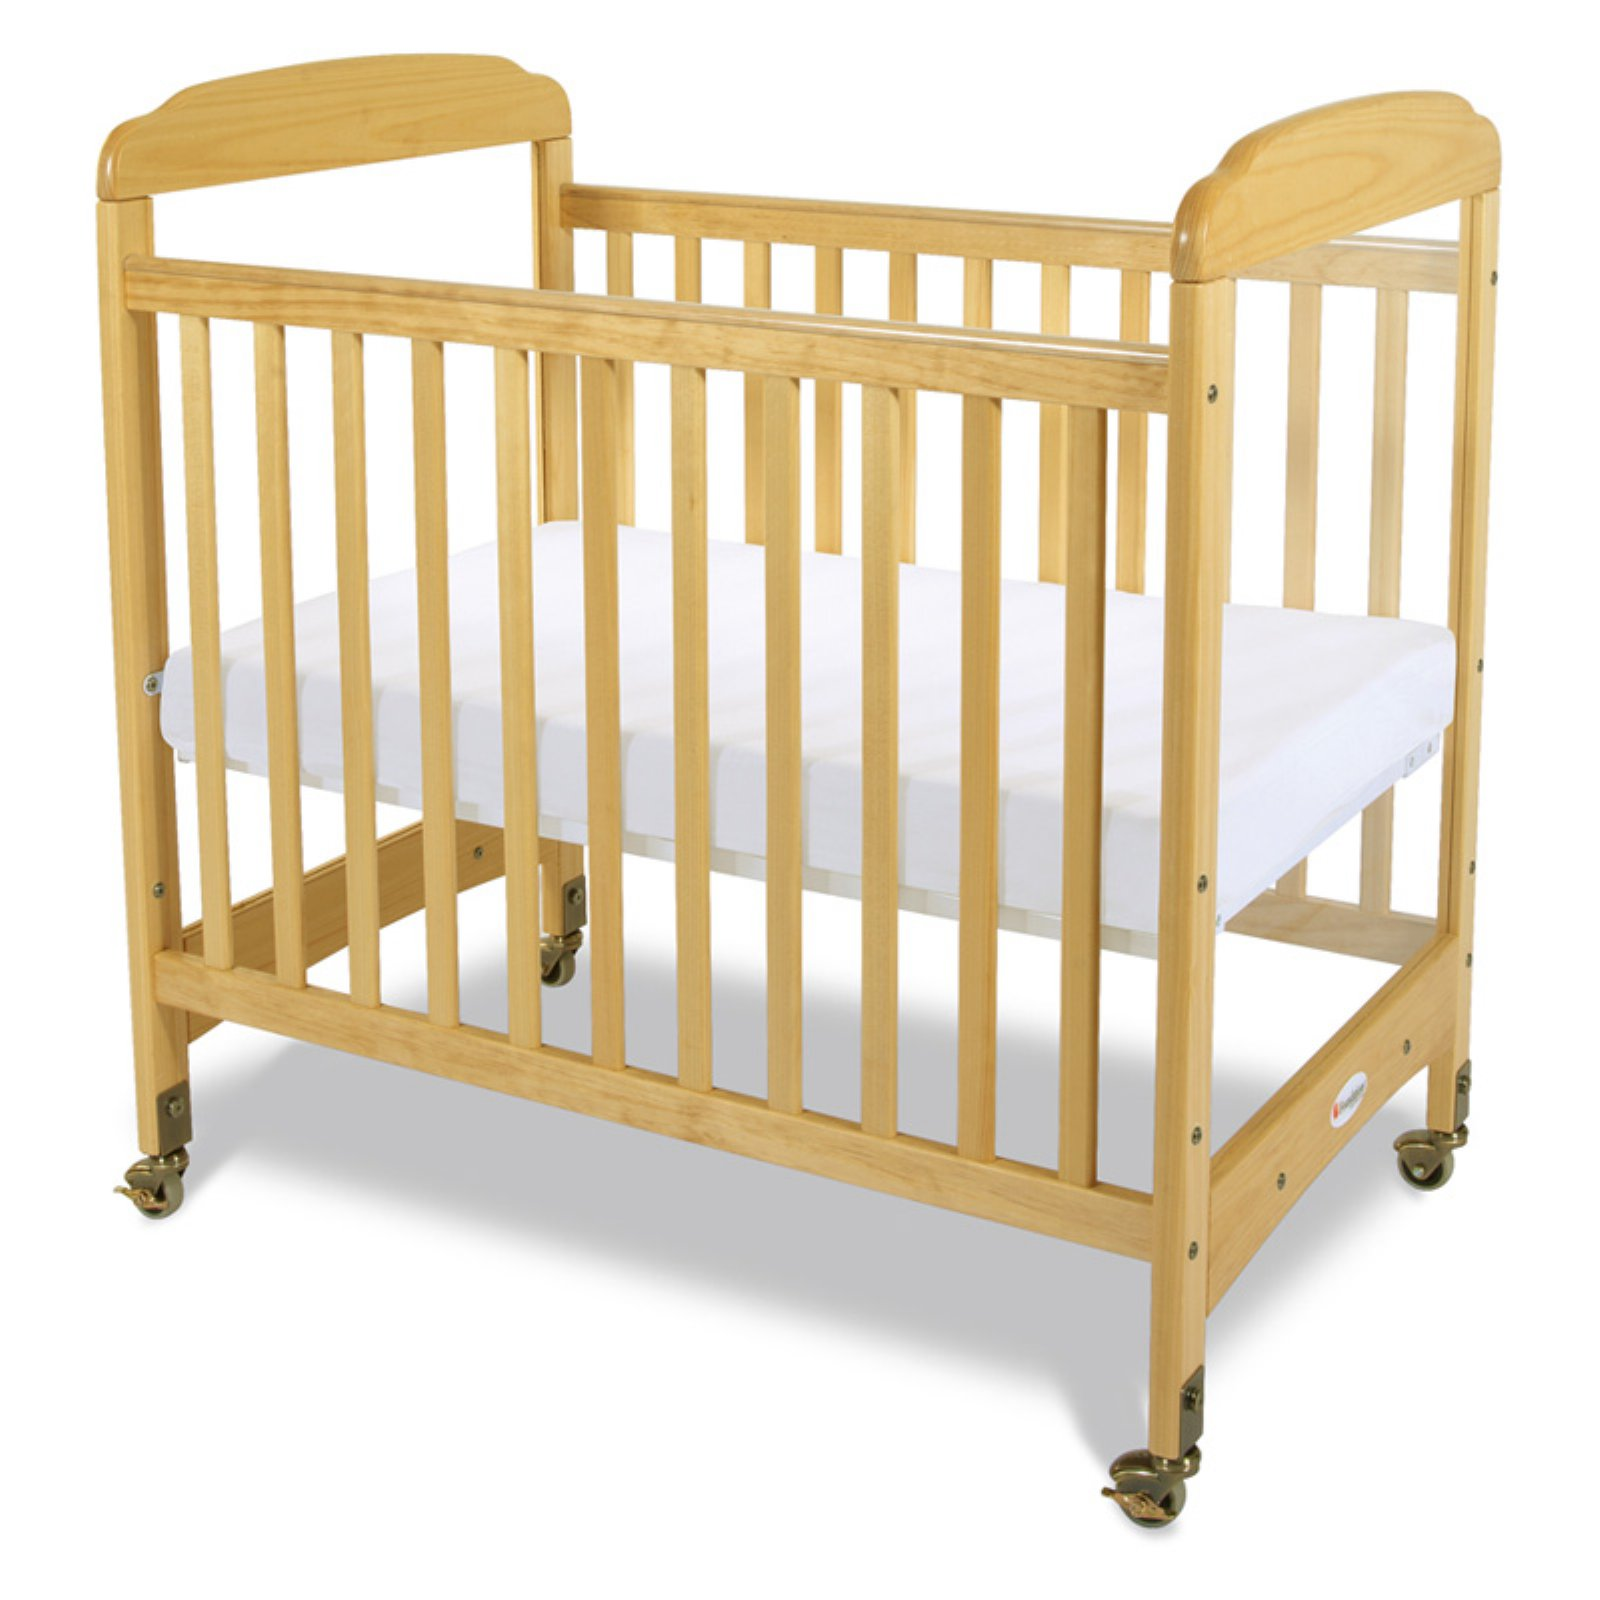 Foundations Serenity Clearview Compact Crib